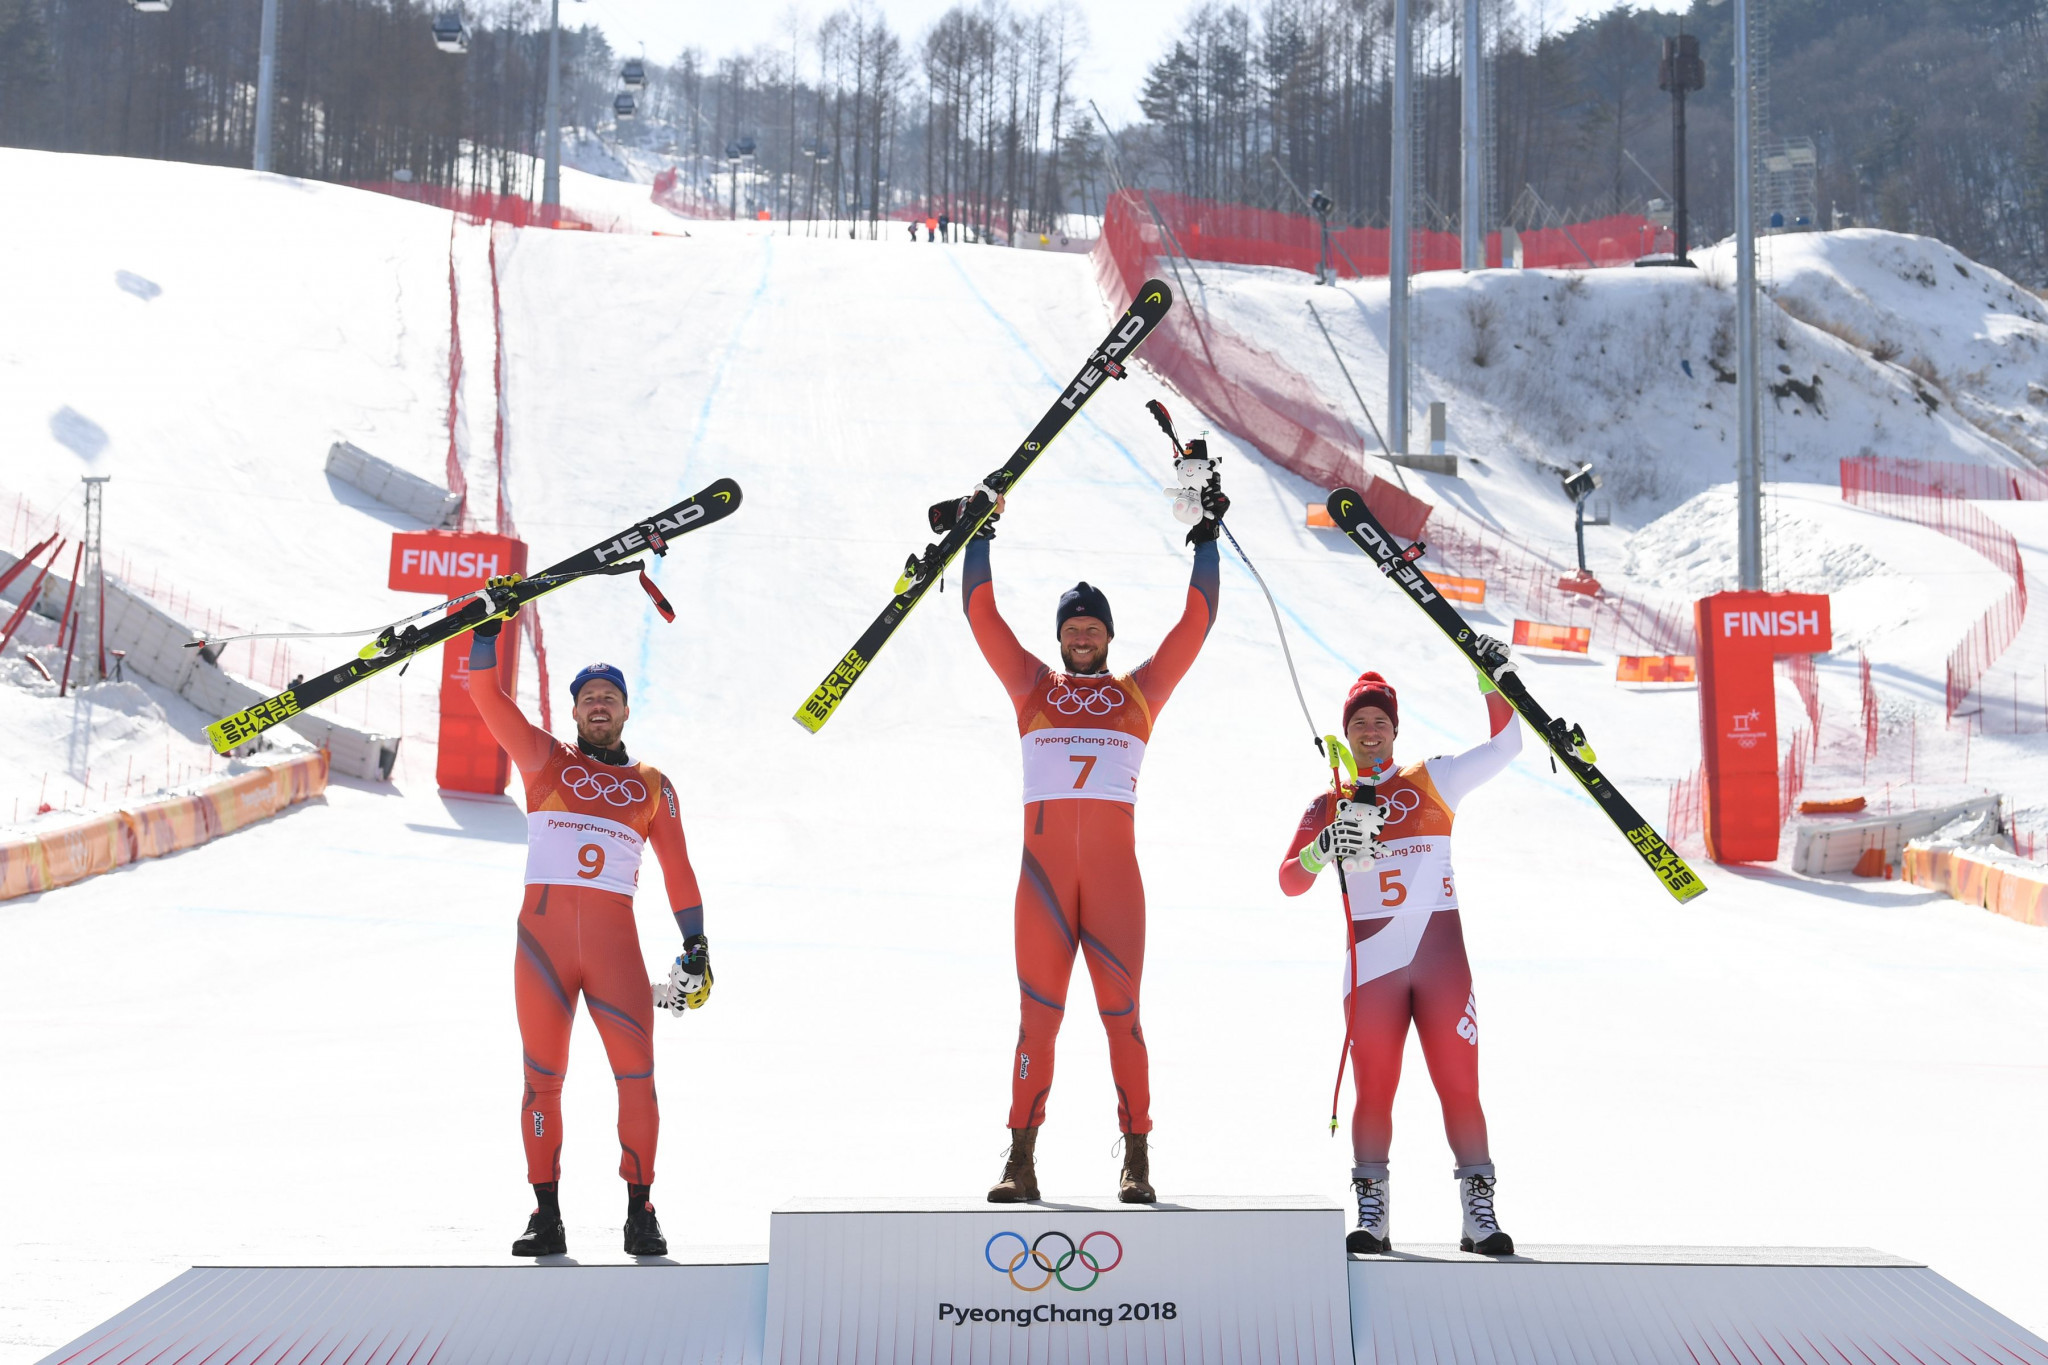 Aksel Lund Svindal topped the podium to claim his second Olympic downhill title ©Getty Images